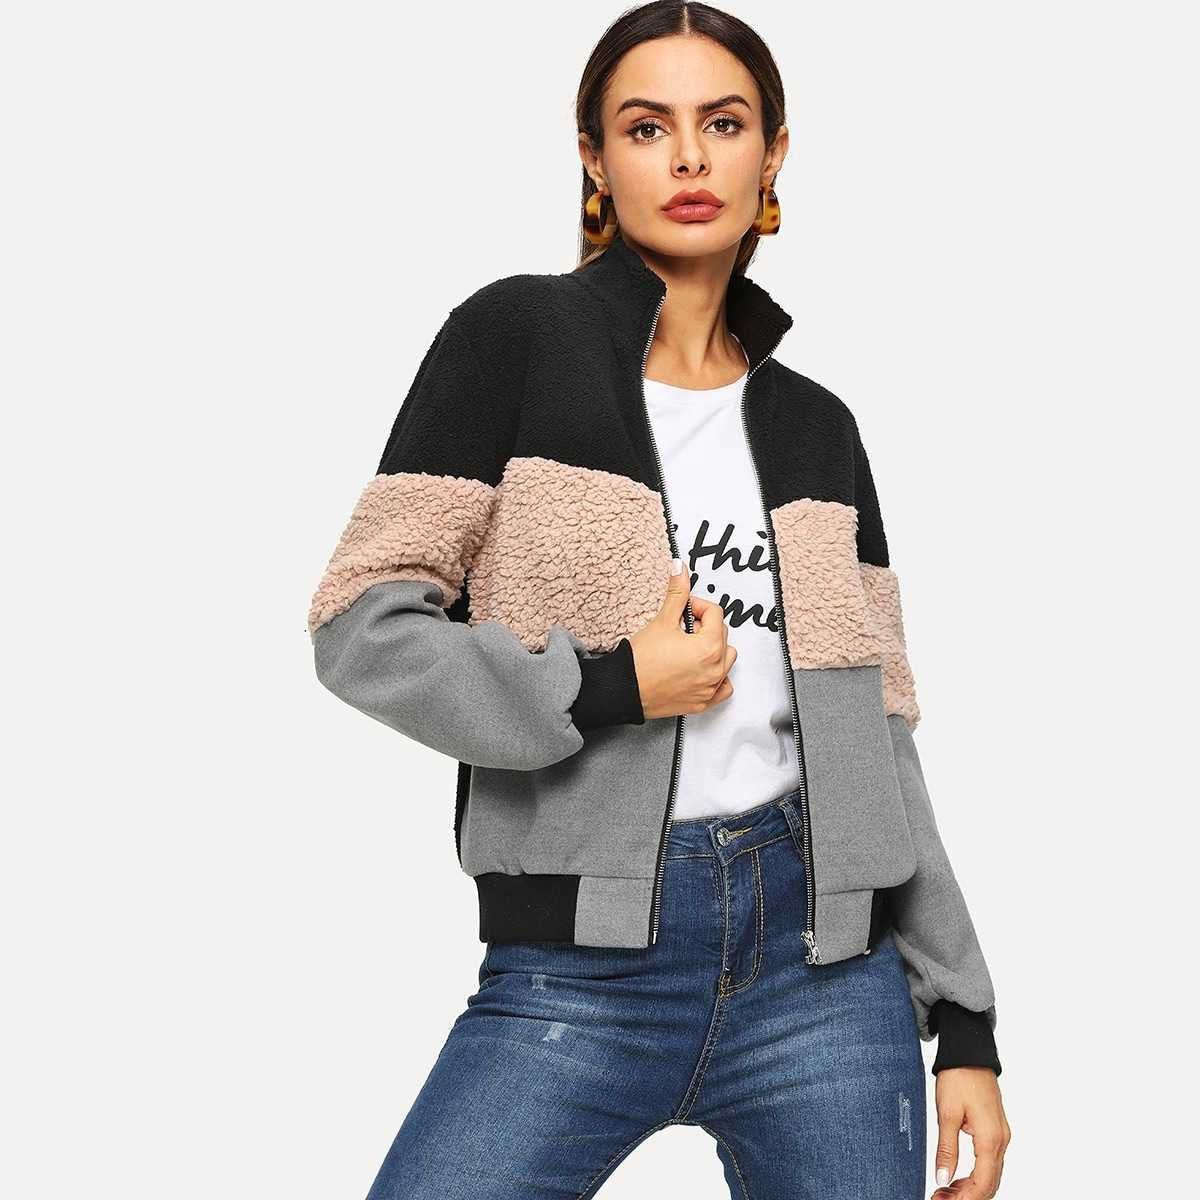 Color Block Mixed Media Teddy Jacket in Multicolor by ROMWE on GOOFASH